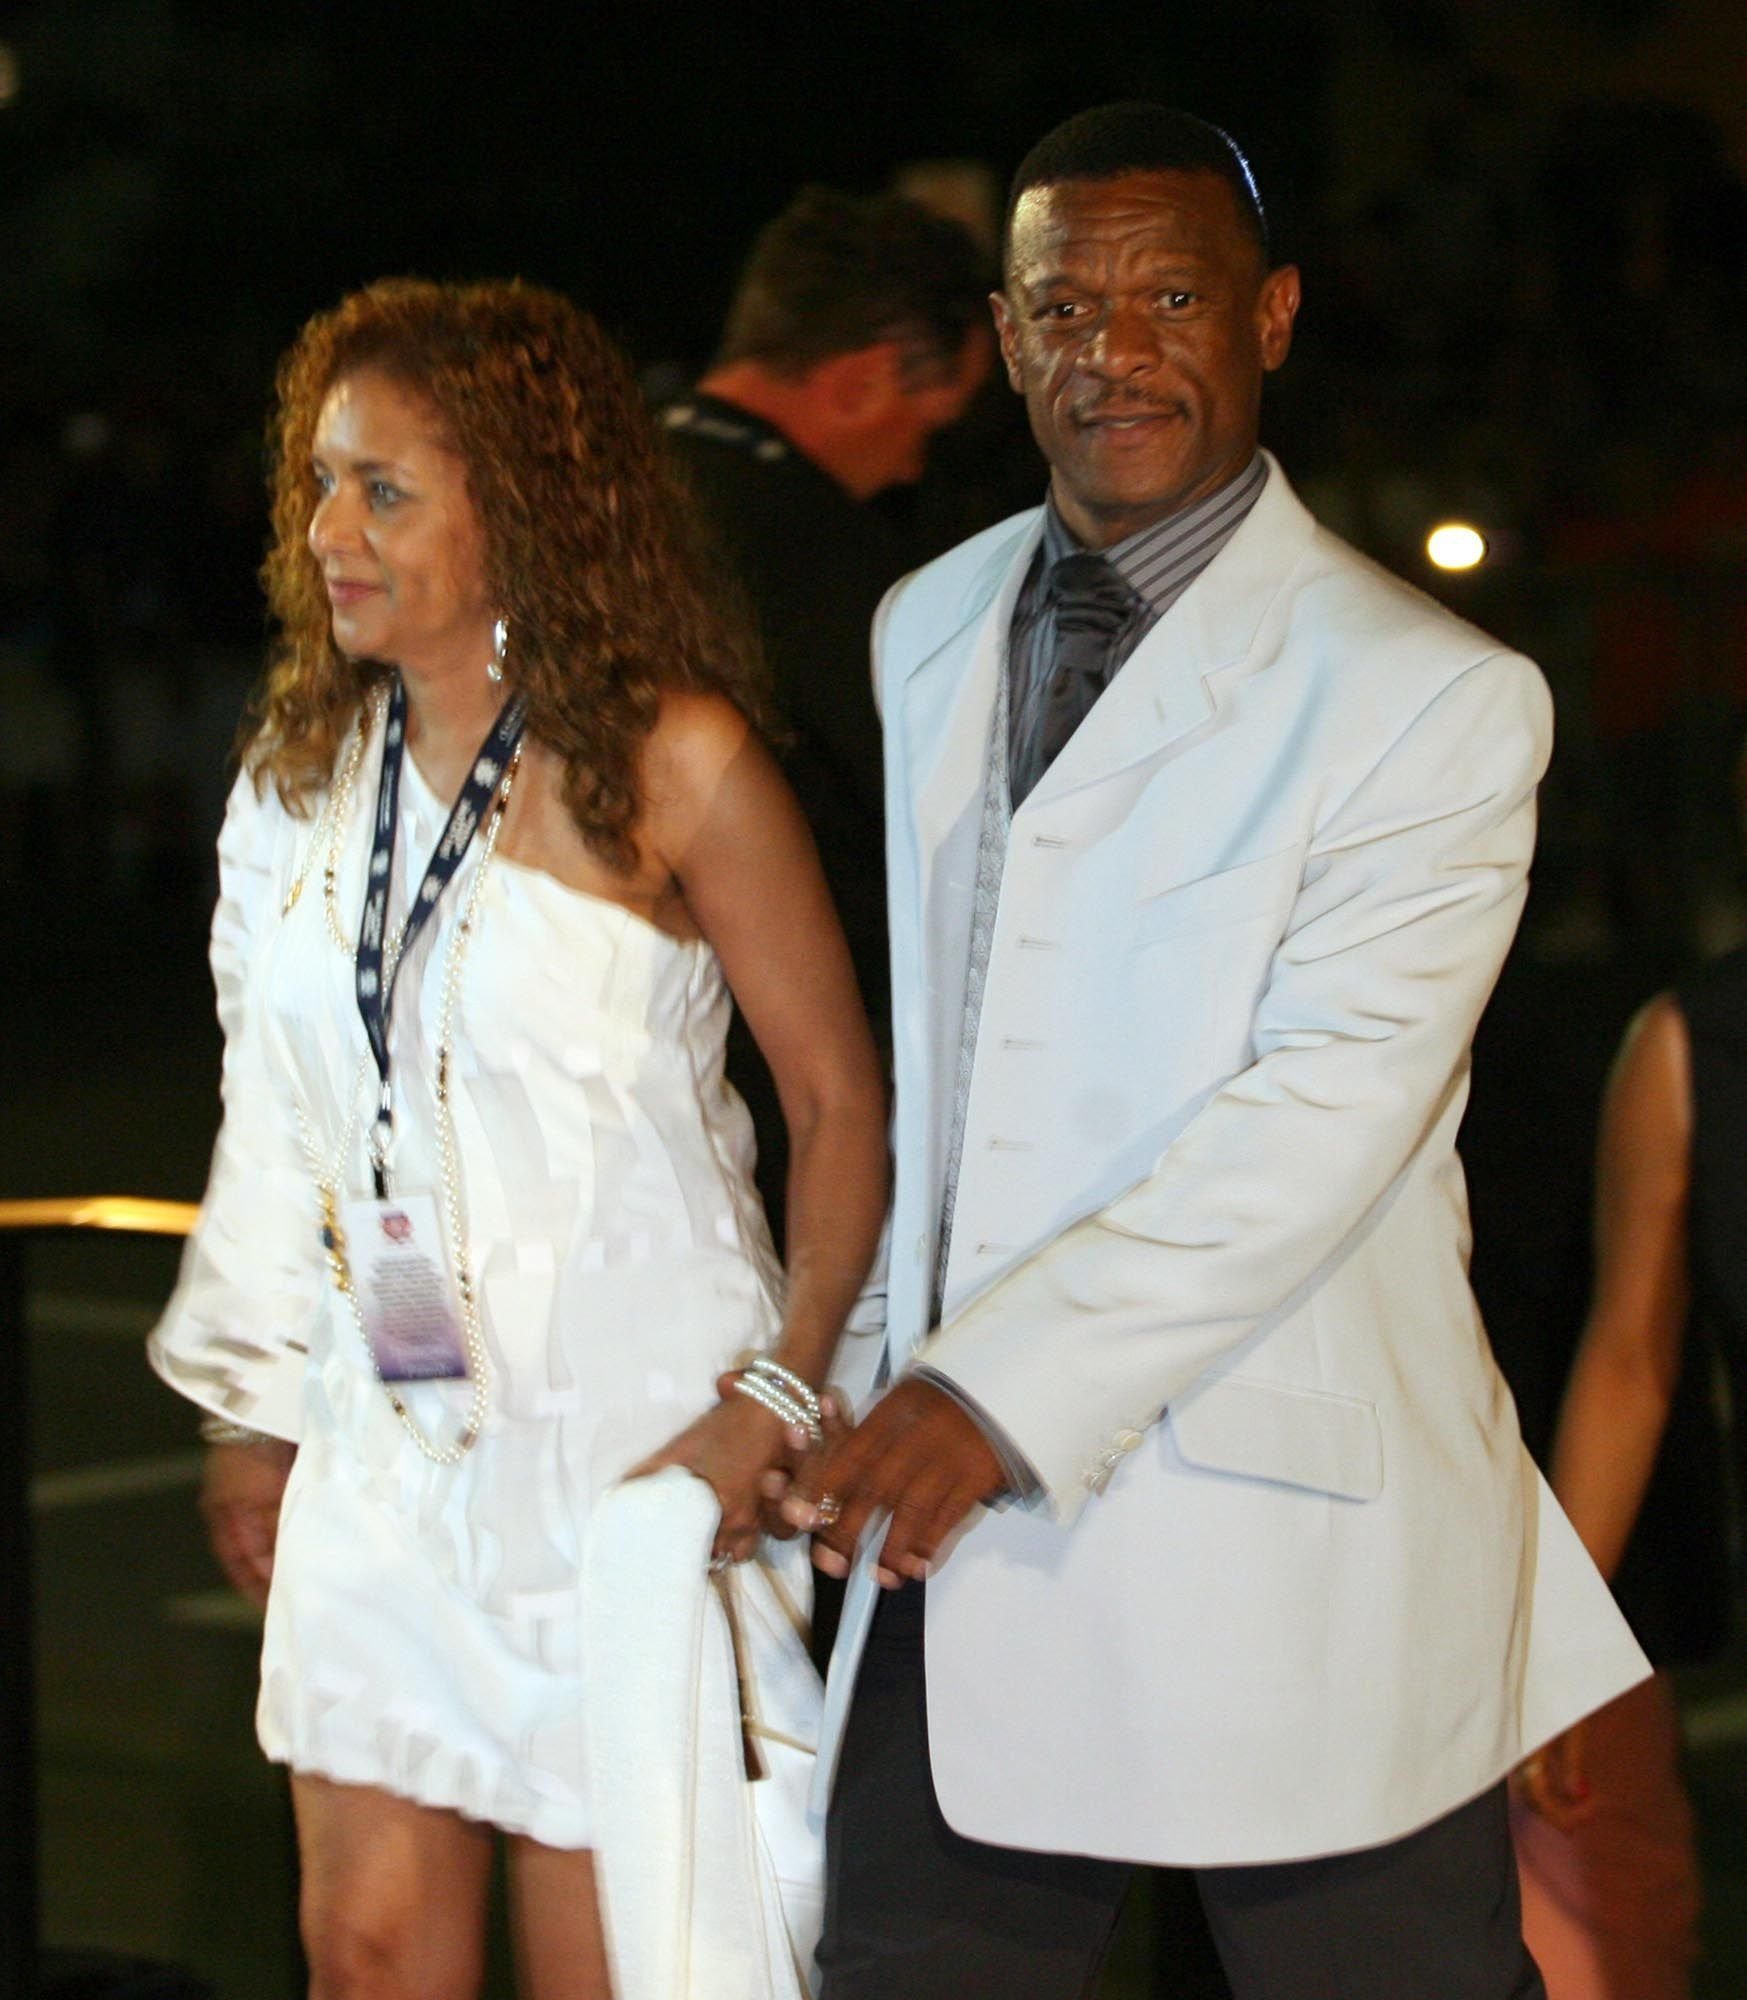 Rickey Henderson and his wife Pamela attending an event together | Source: Getty Images